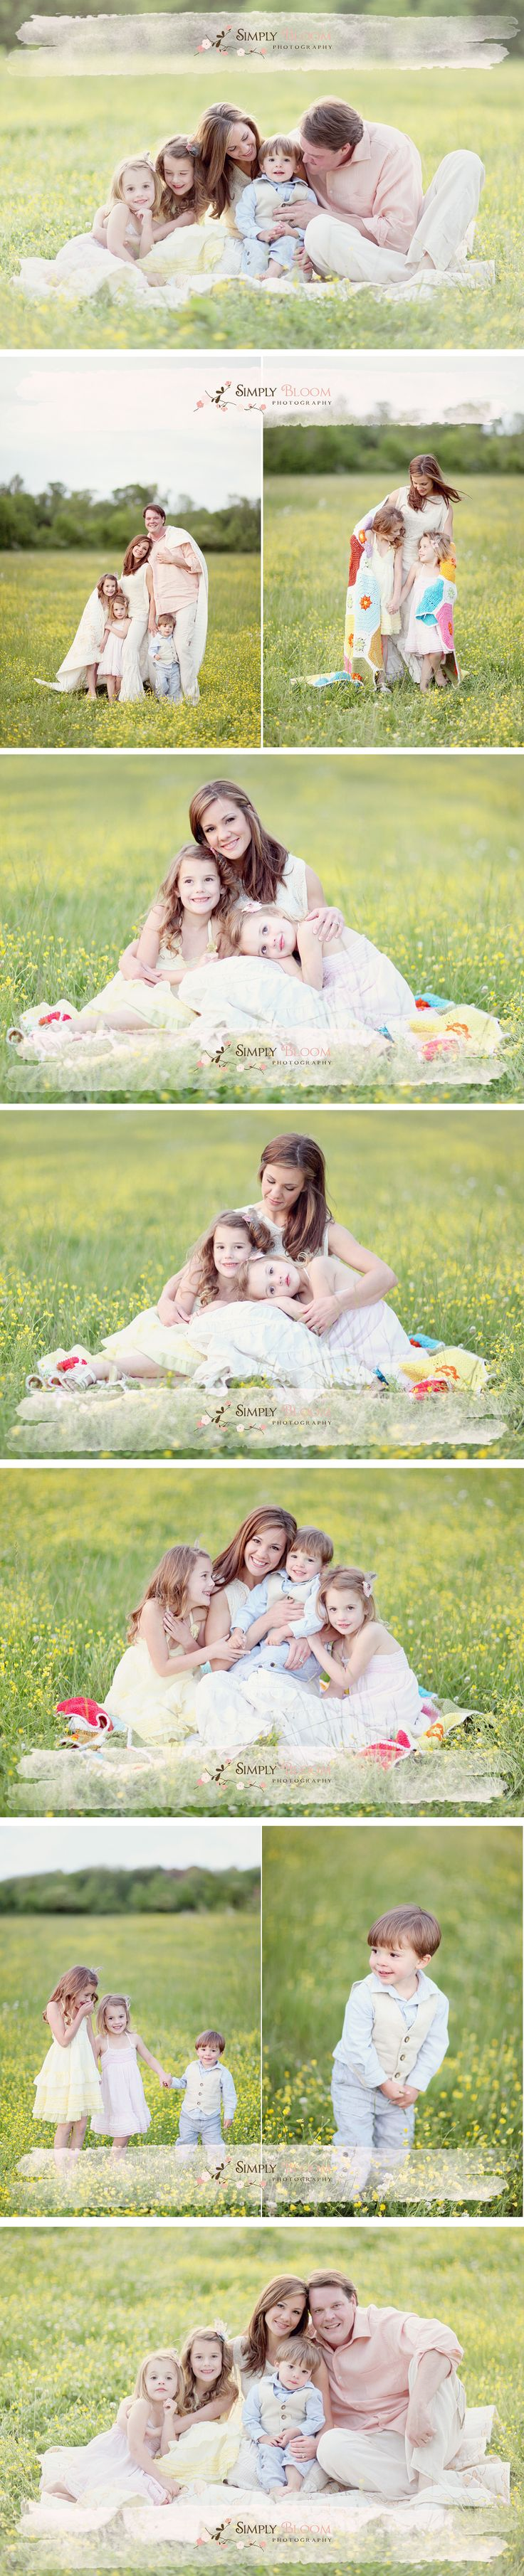 217 best Family Photography Ideas images on Pinterest | Family ...